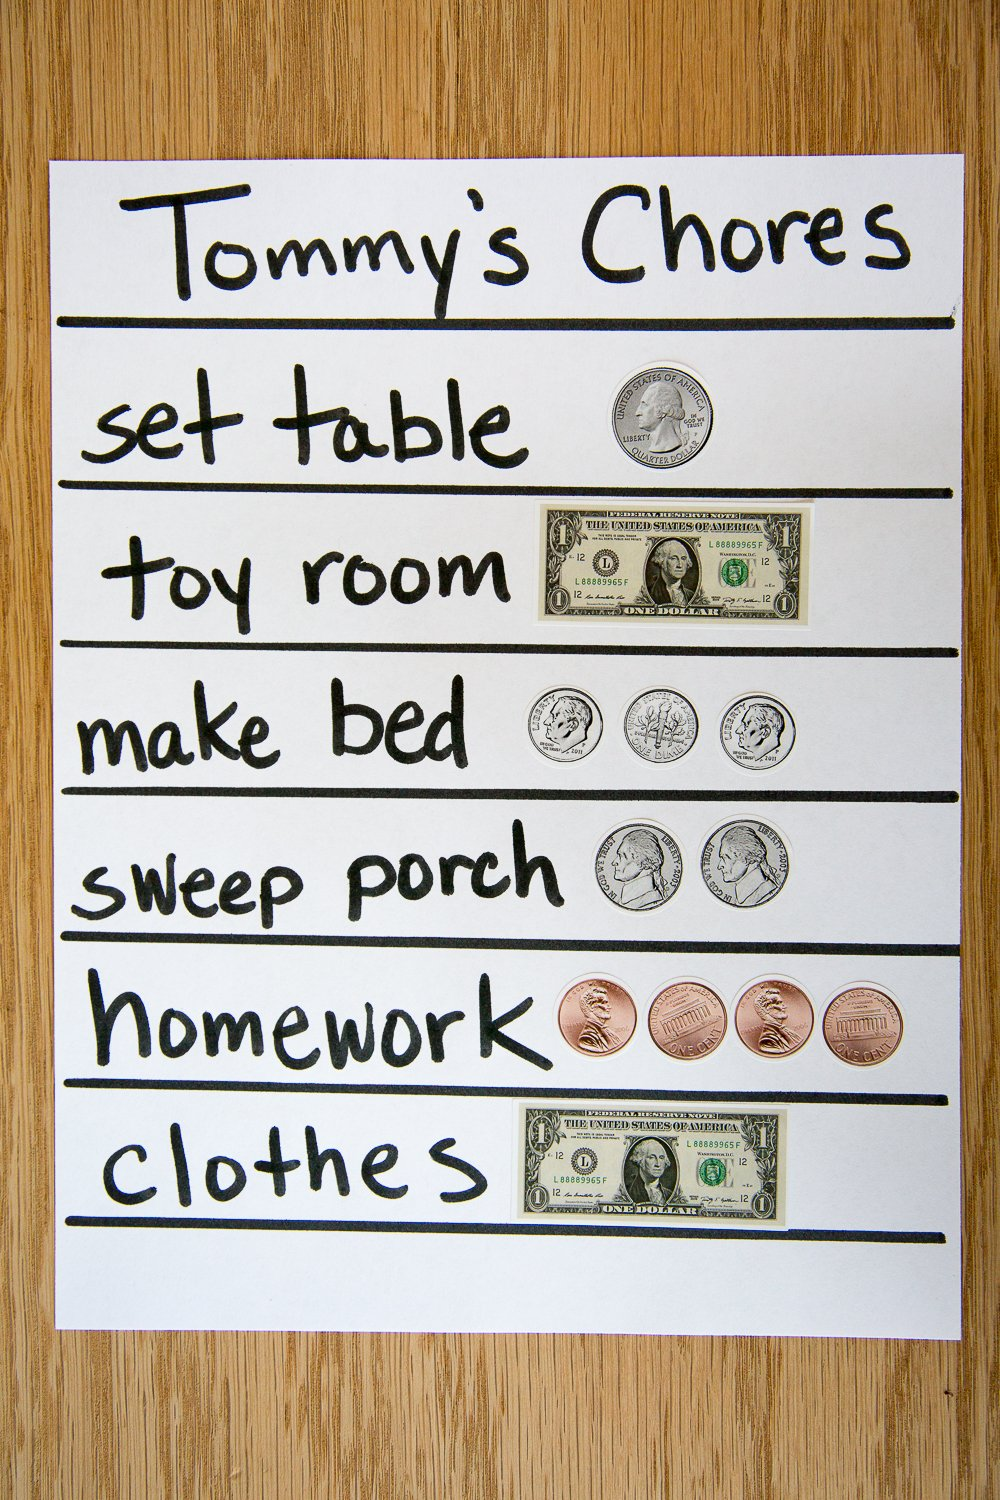 1038 Pieces U.S. Coin & Currency Stickers | For Classroom & Home Use | Extra Strong Adhesive | Realistic Size | 14 Total Sheets | By PureBloom Products by PureBloom Products (Image #3)